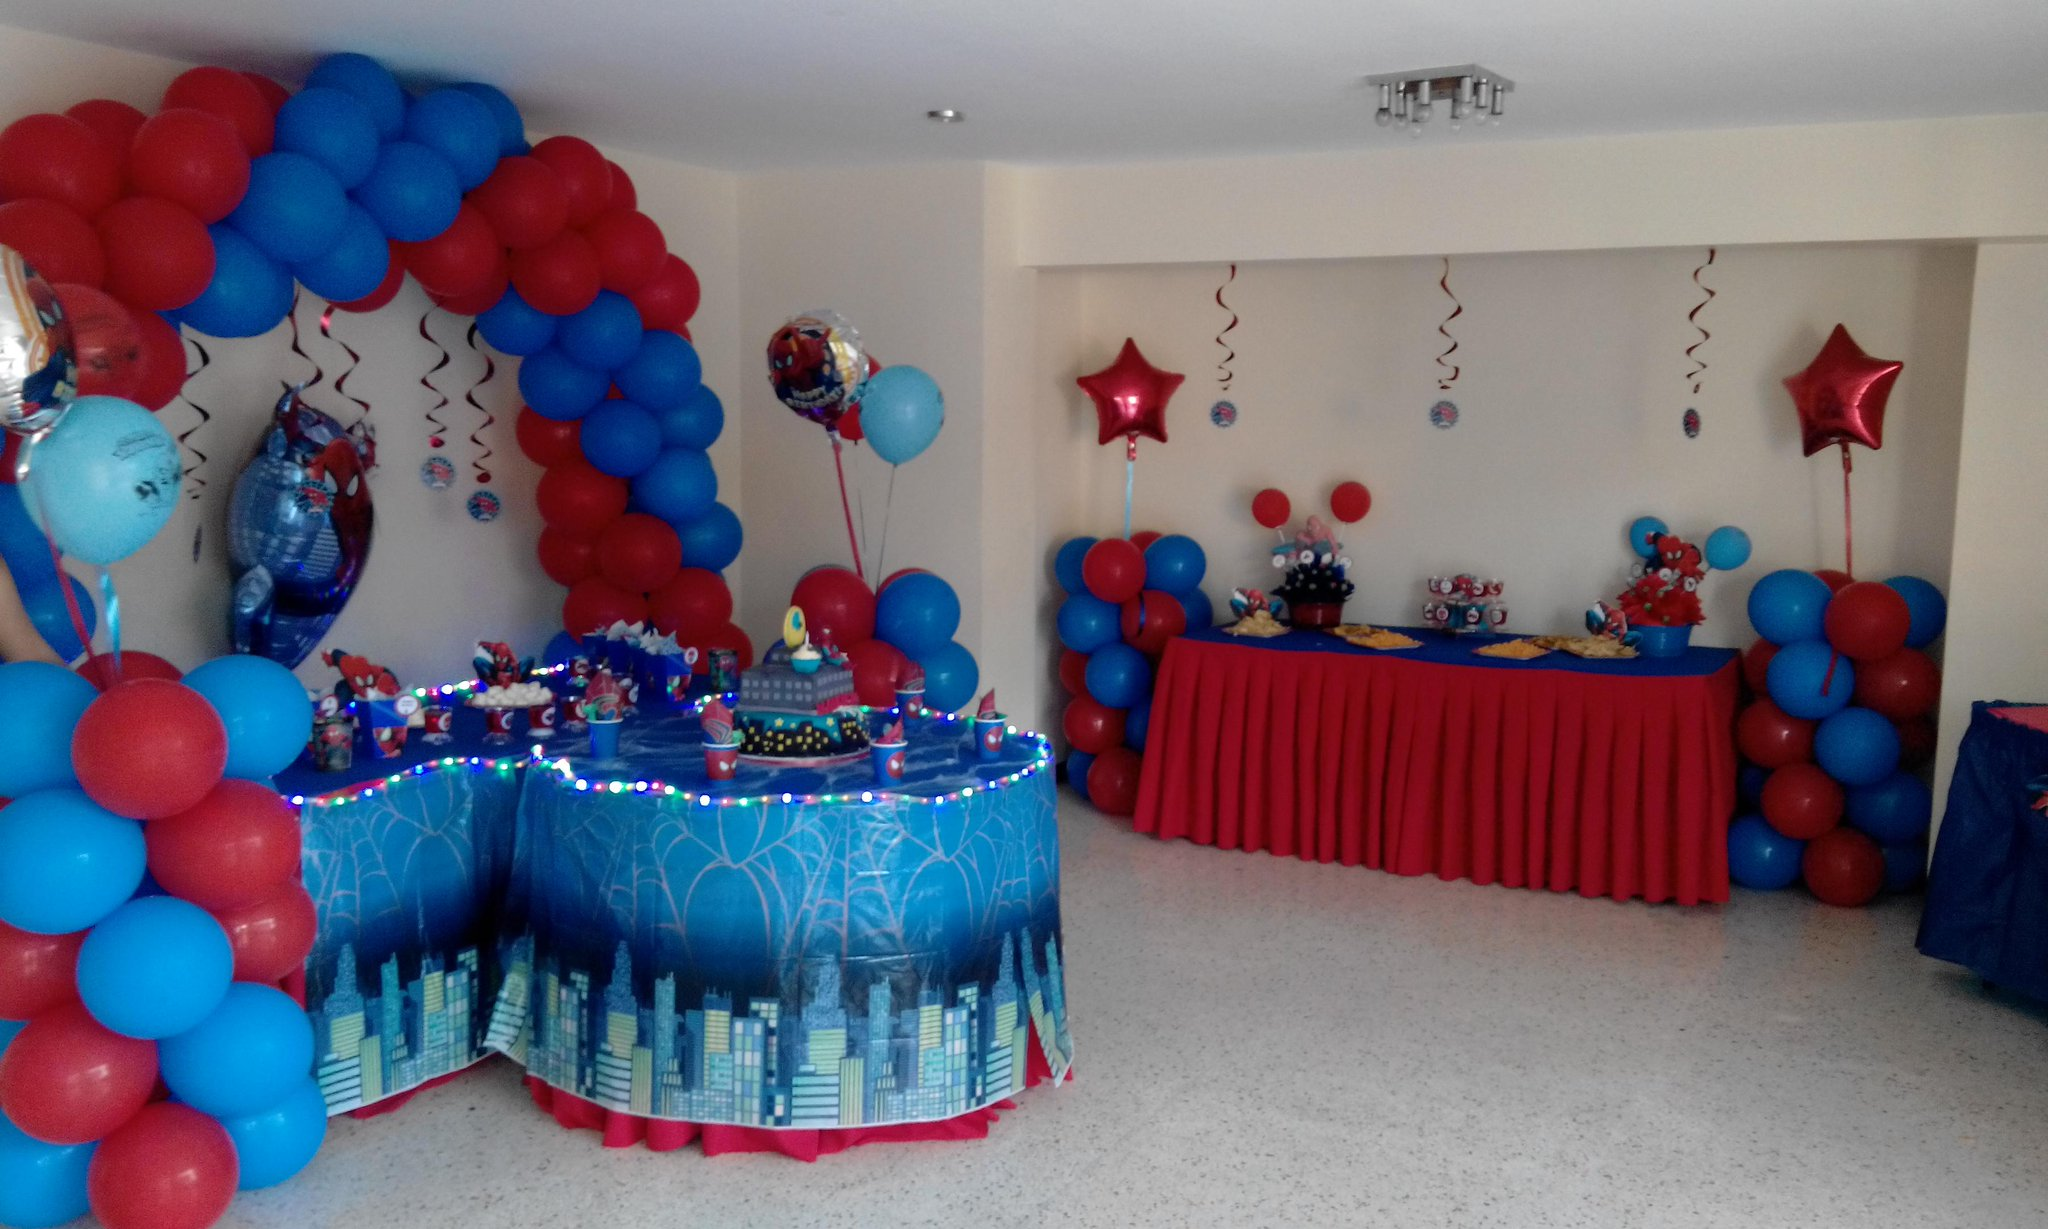 Decoraciones Gramar Partykool 2 On Twitter Quotdecoración Con Globos